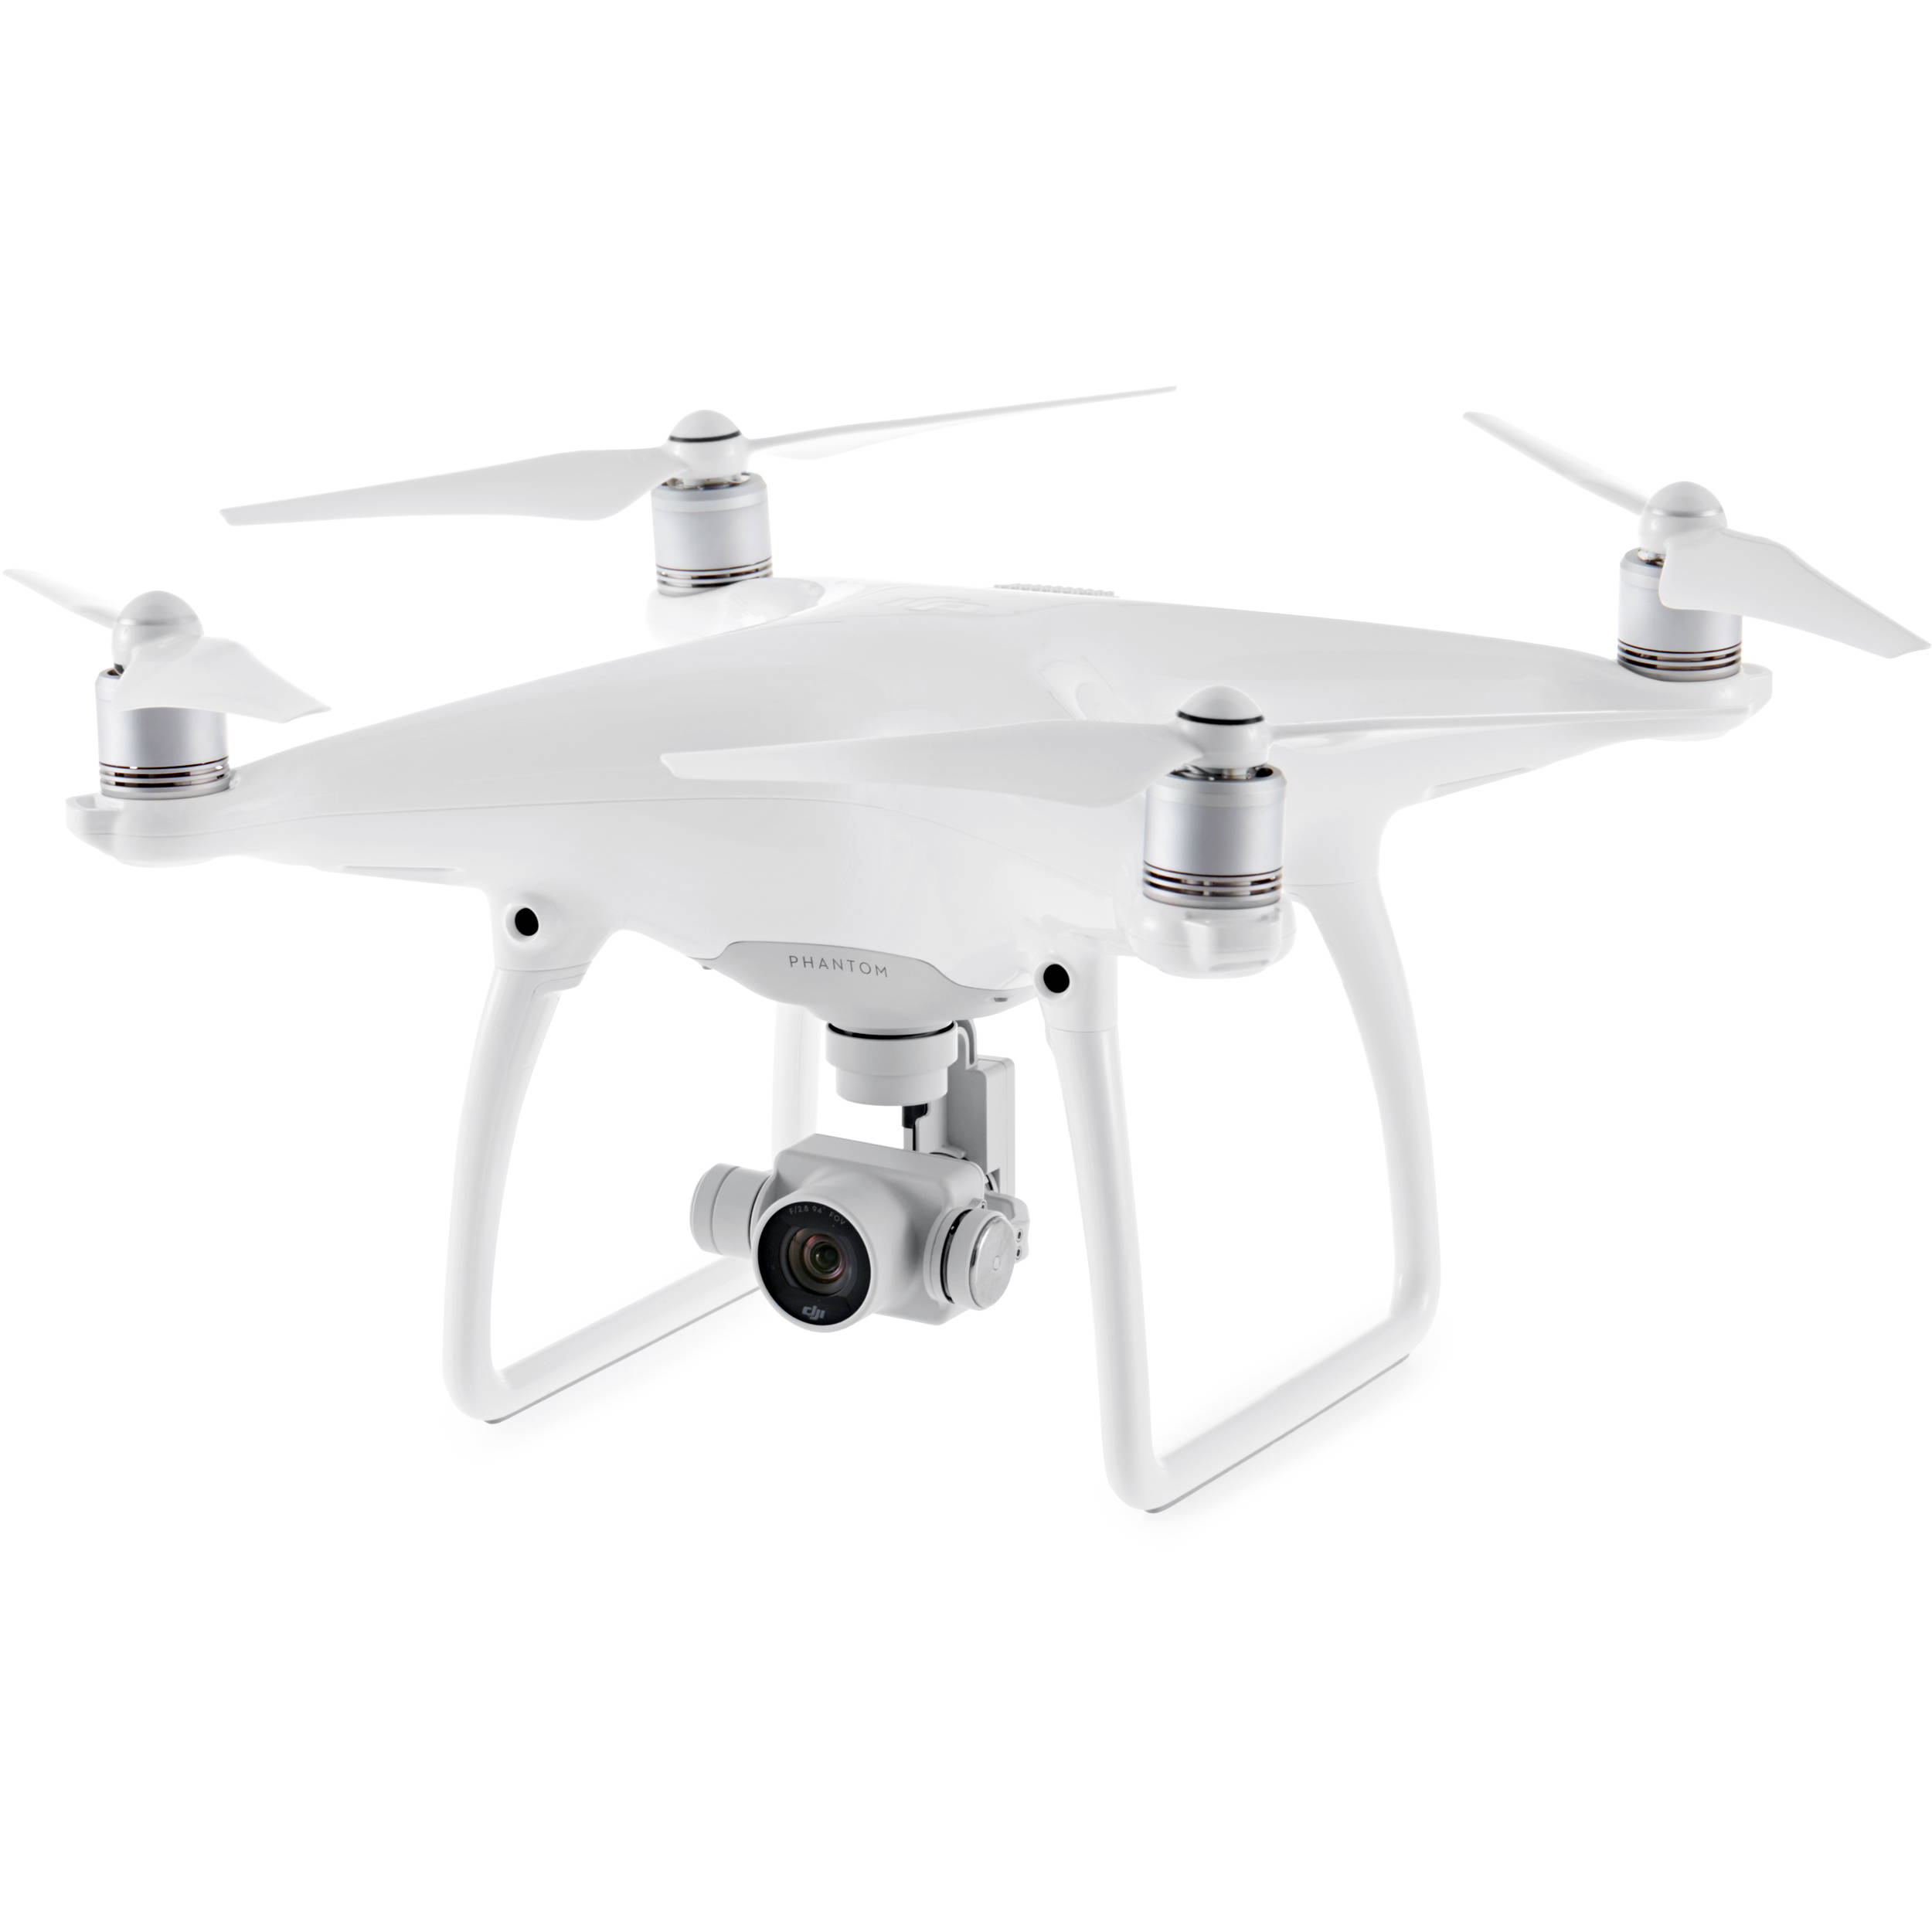 Dji Phantom 4 >> Dji Phantom 4 Quadcopter Cp Pt 000312 B H Photo Video